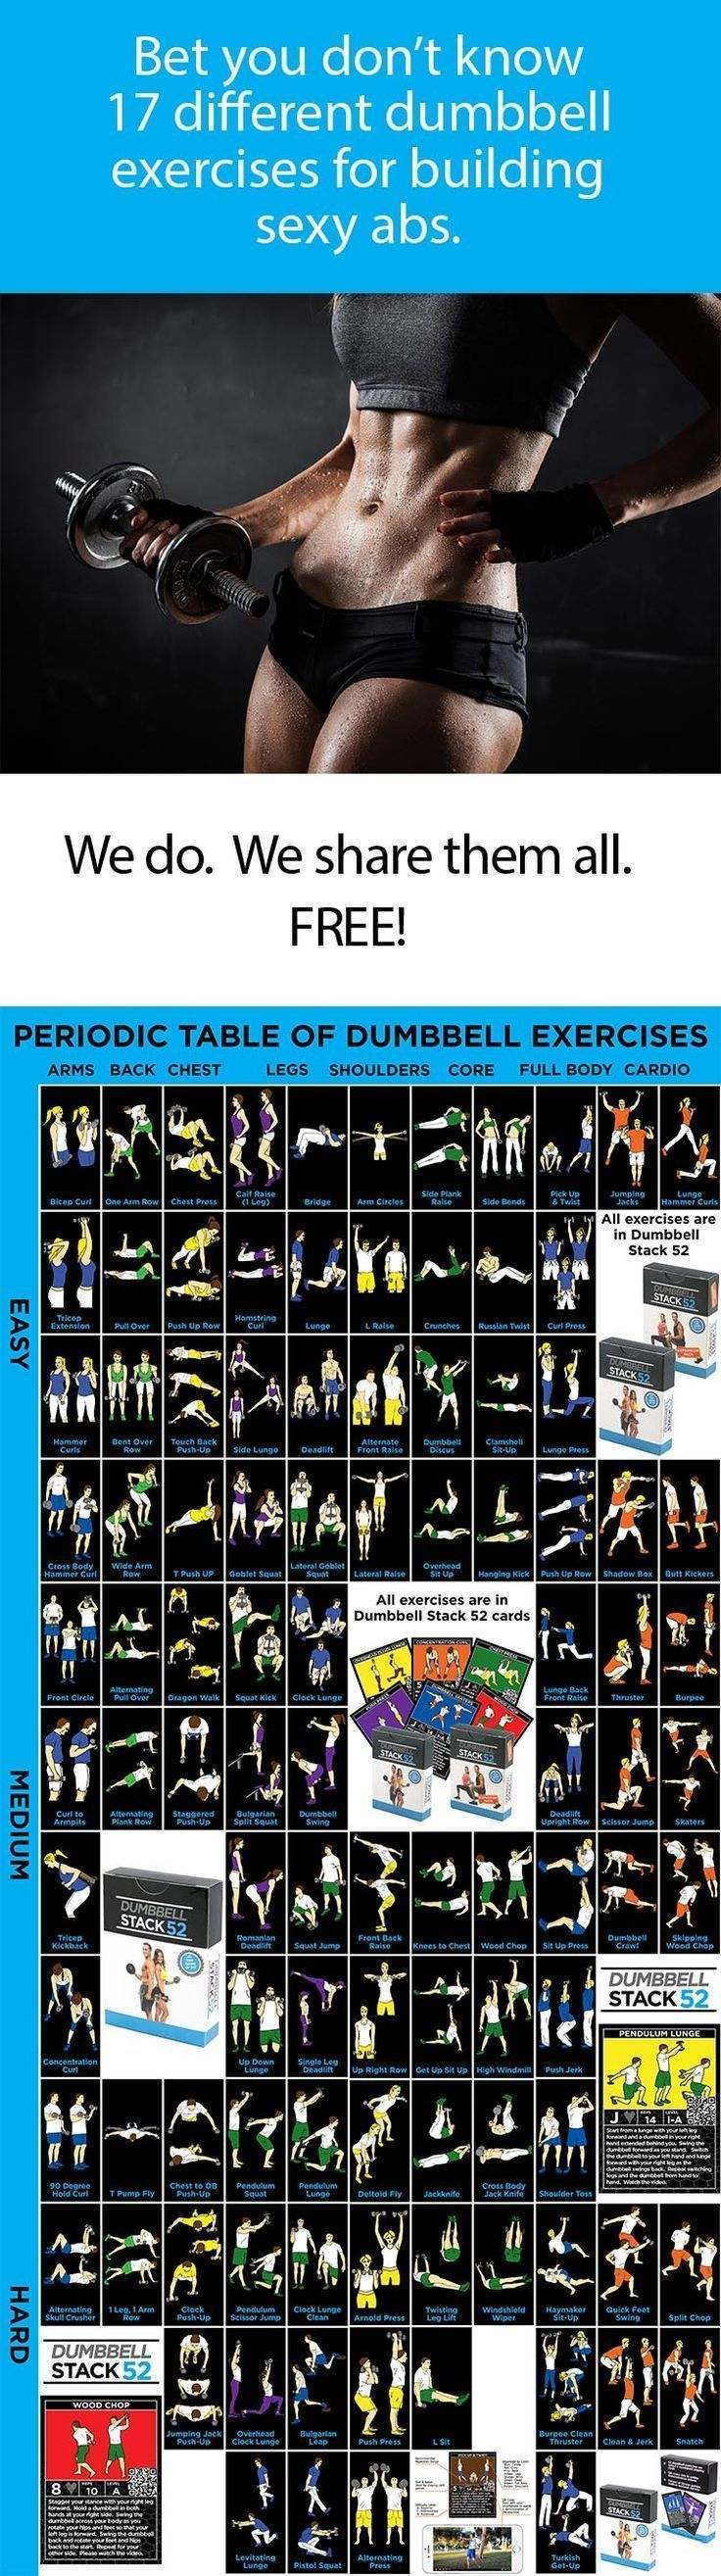 list of dumbbell exercises by muscle group dumbbell - 736×2629